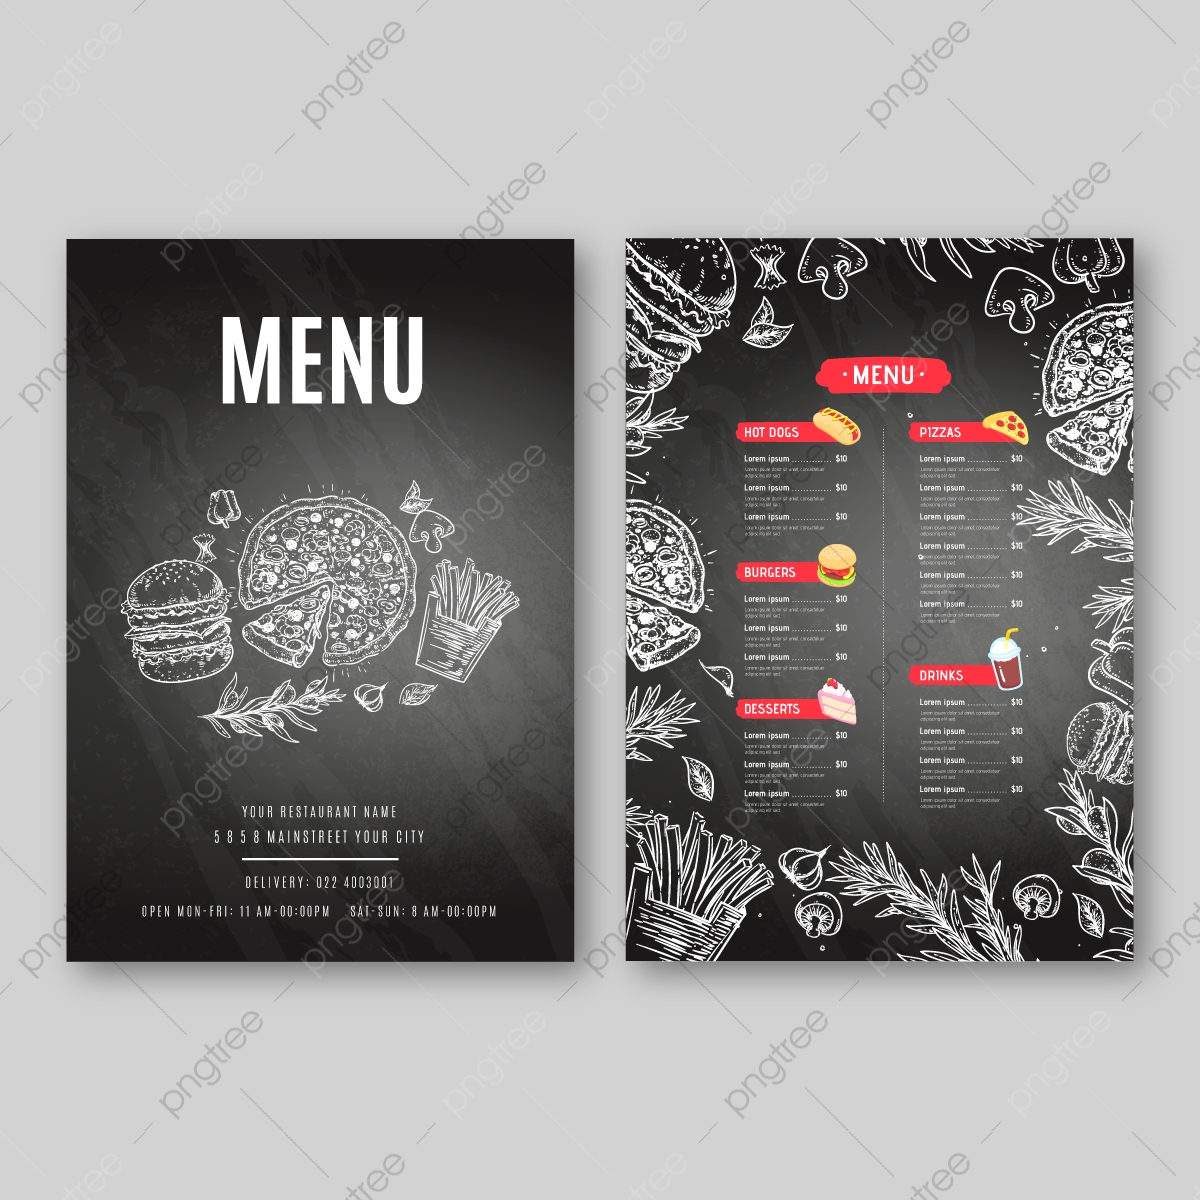 Italian Restaurant Png Vector Psd And Clipart With Transparent Background For Free Download Pngtree